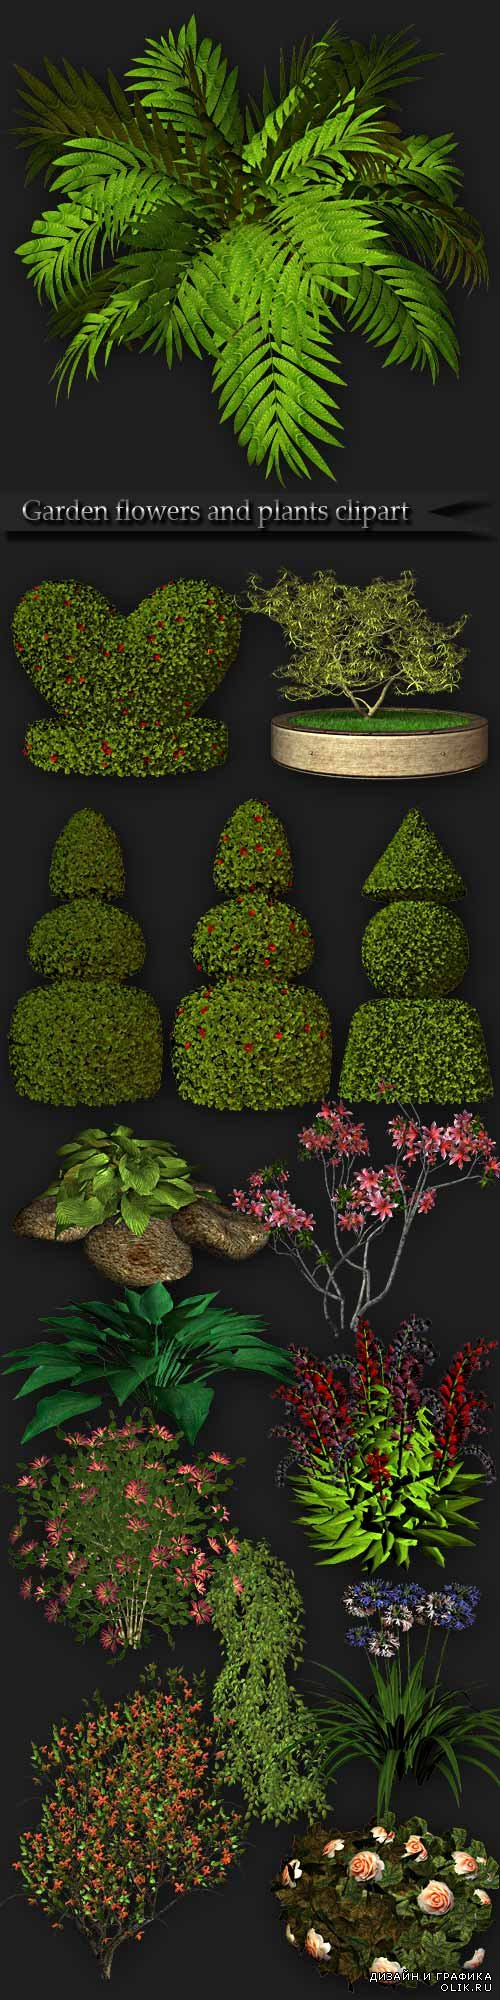 Garden flowers and plants clipart PNG